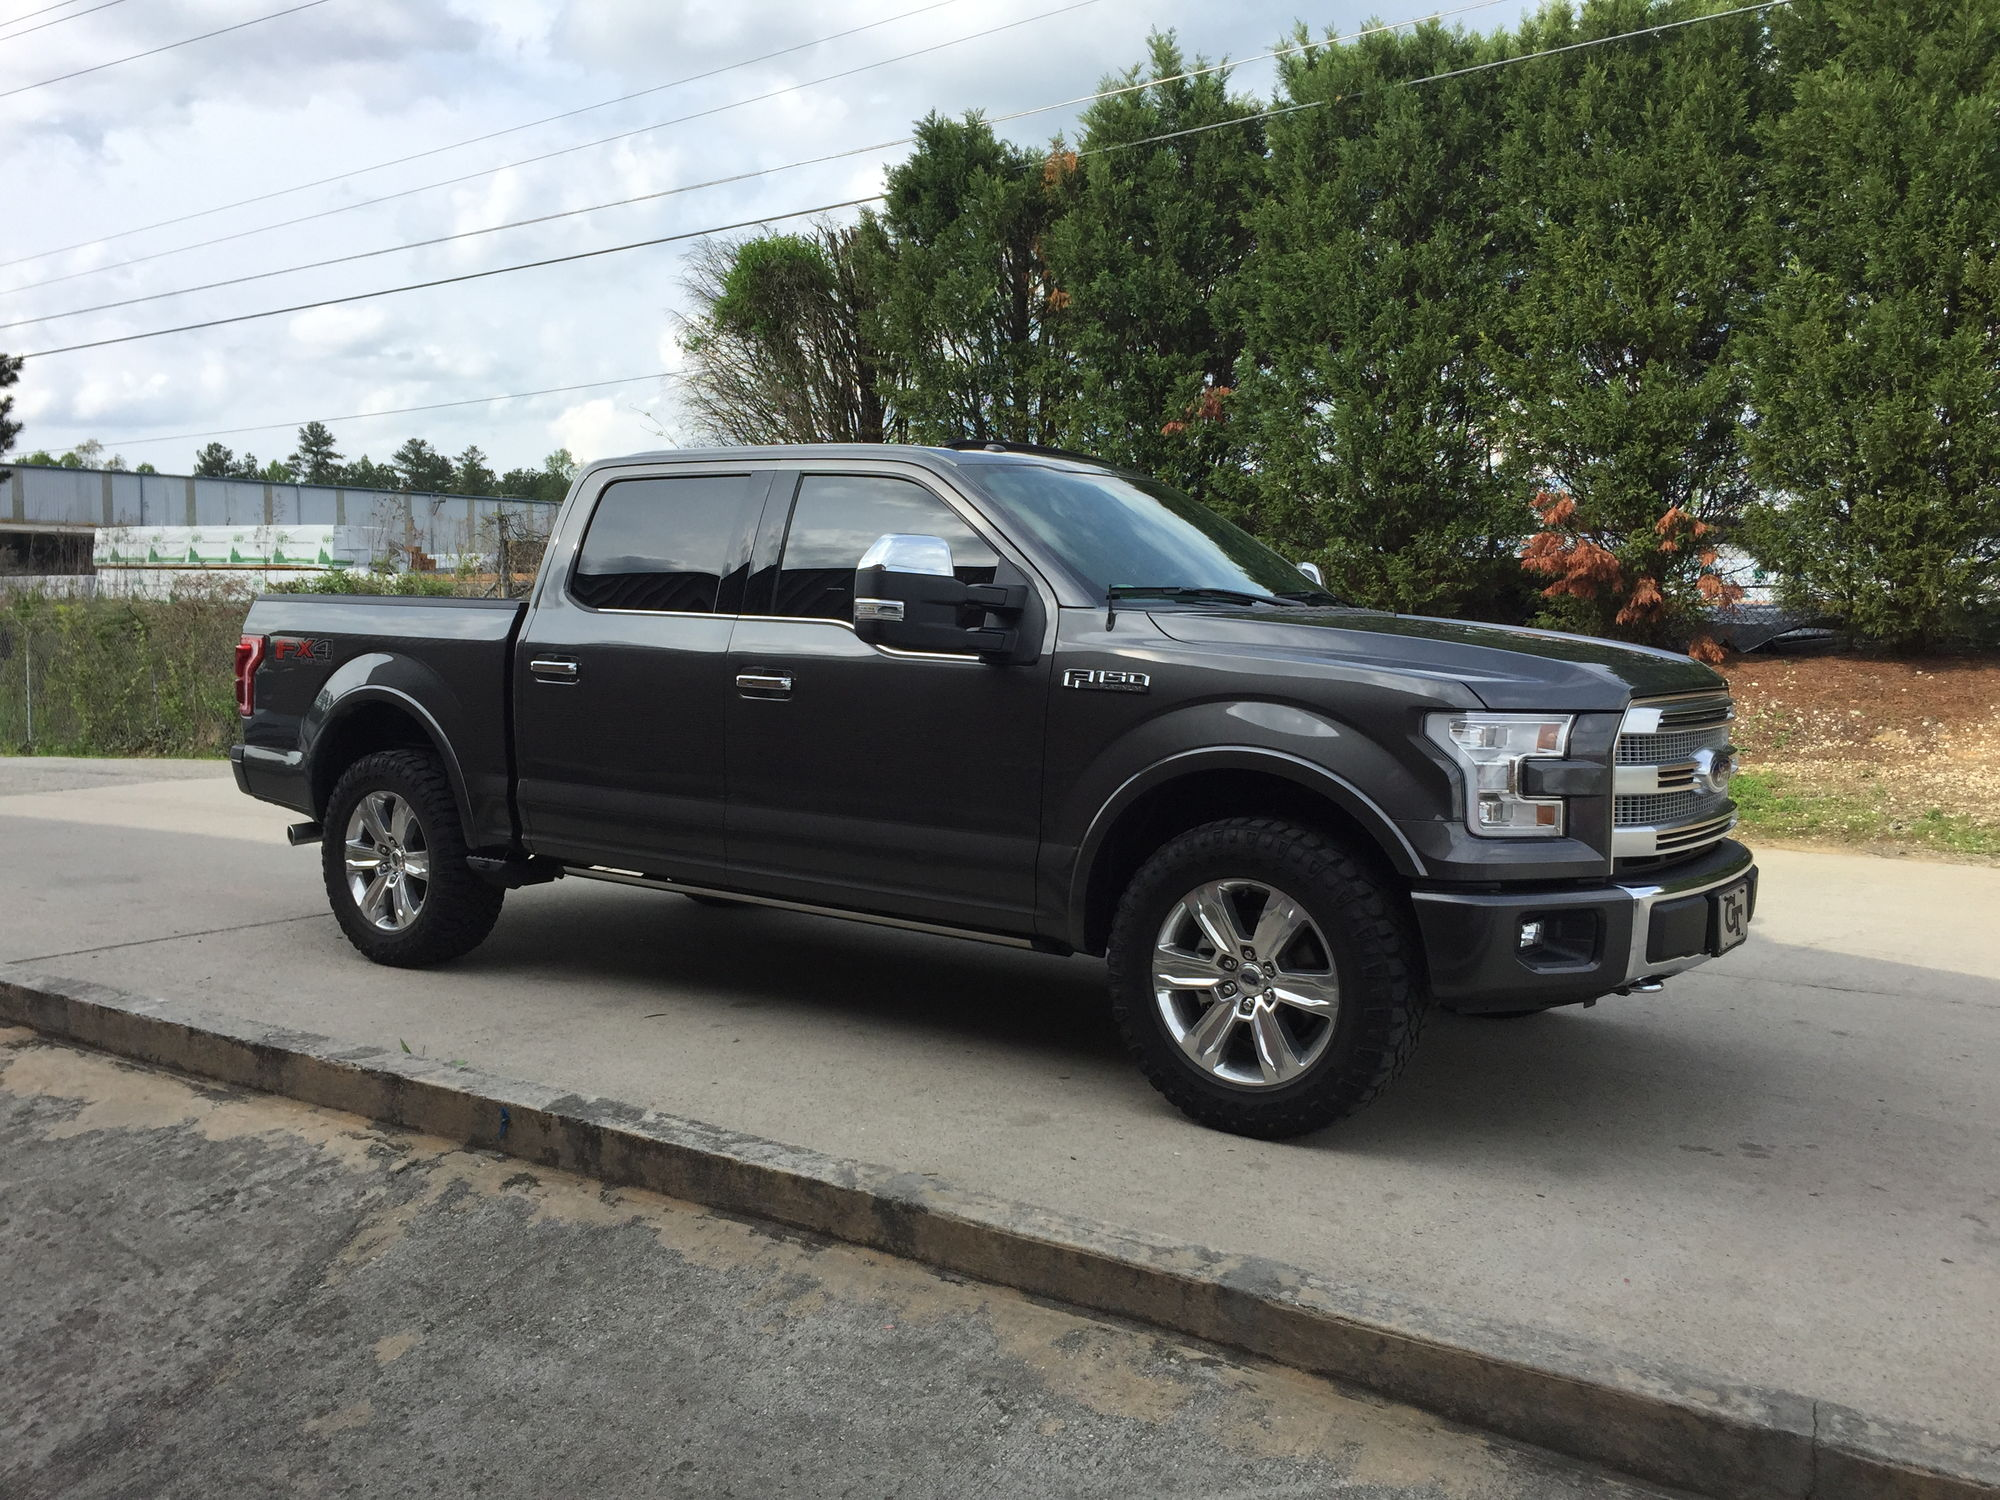 275 60r20 In Inches >> 285/60r20 on a stock 2015 - Ford F150 Forum - Community of ...